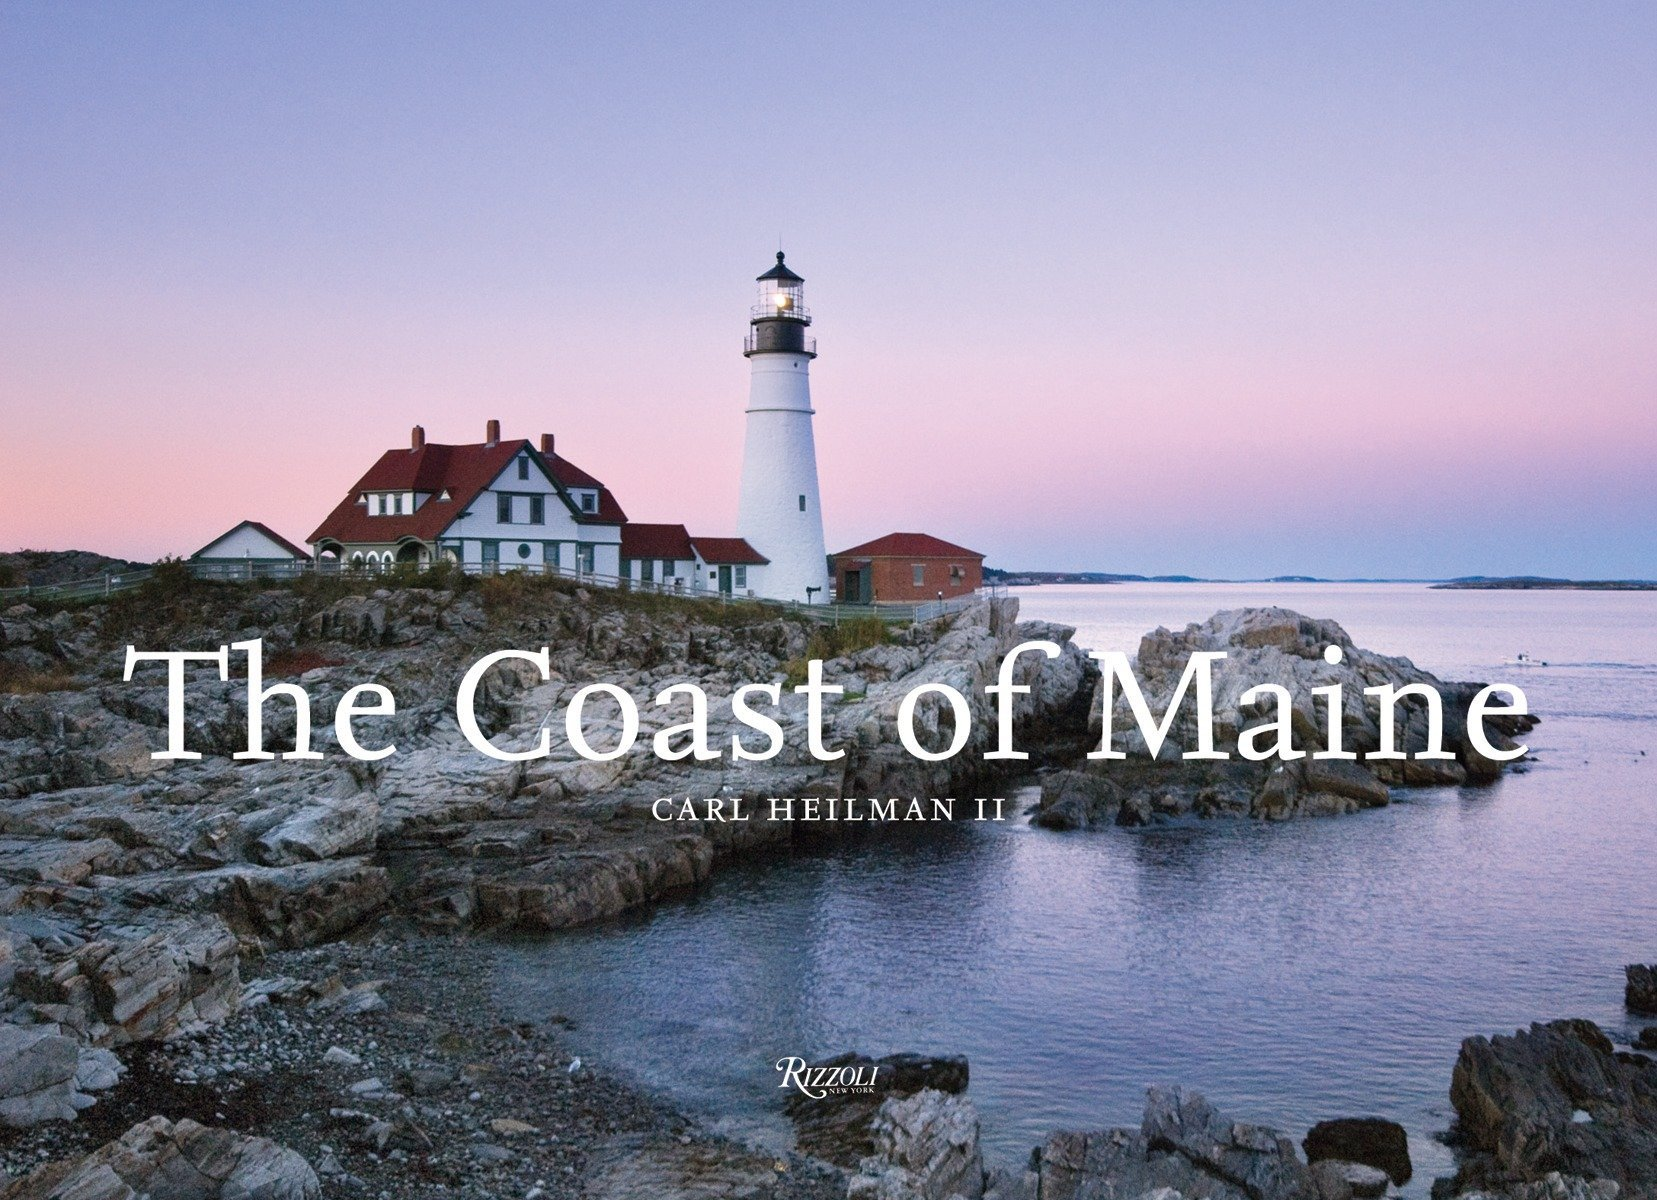 Image OfThe Coast Of Maine